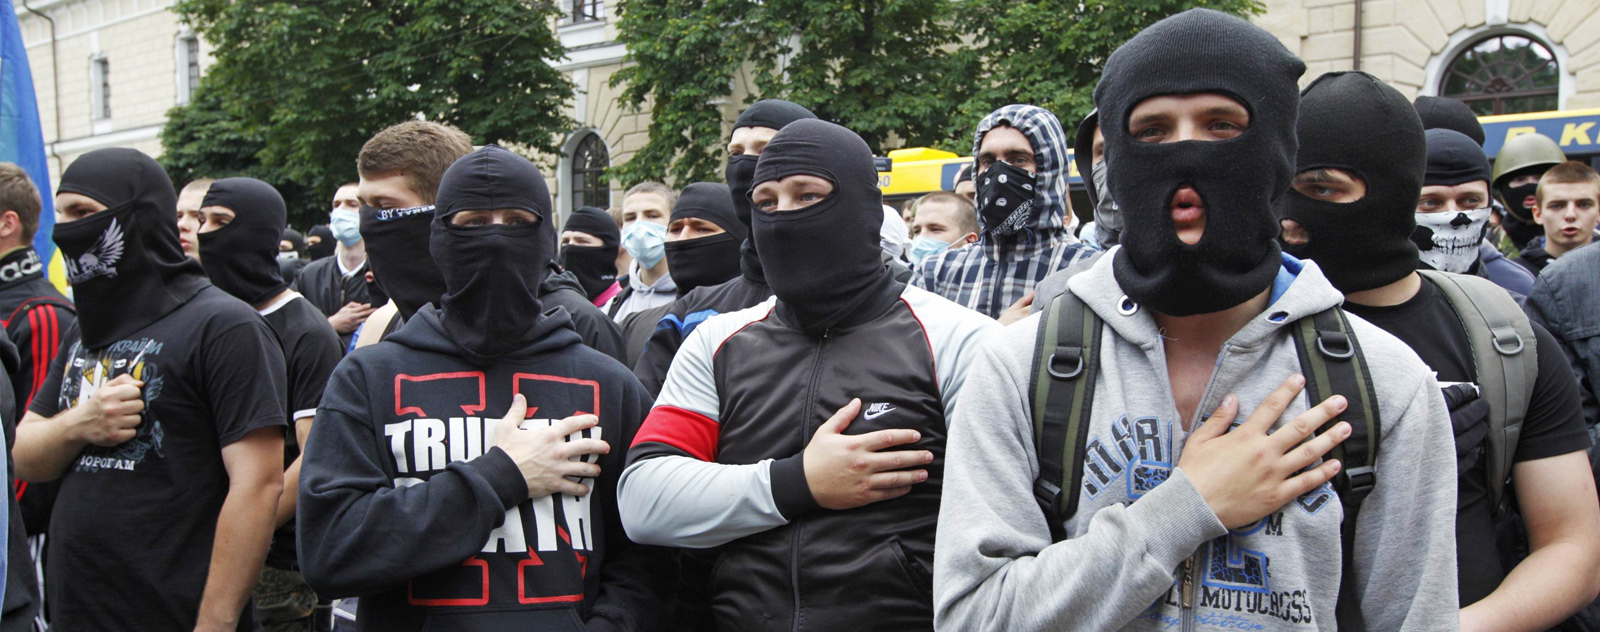 Wear a balaclava in public